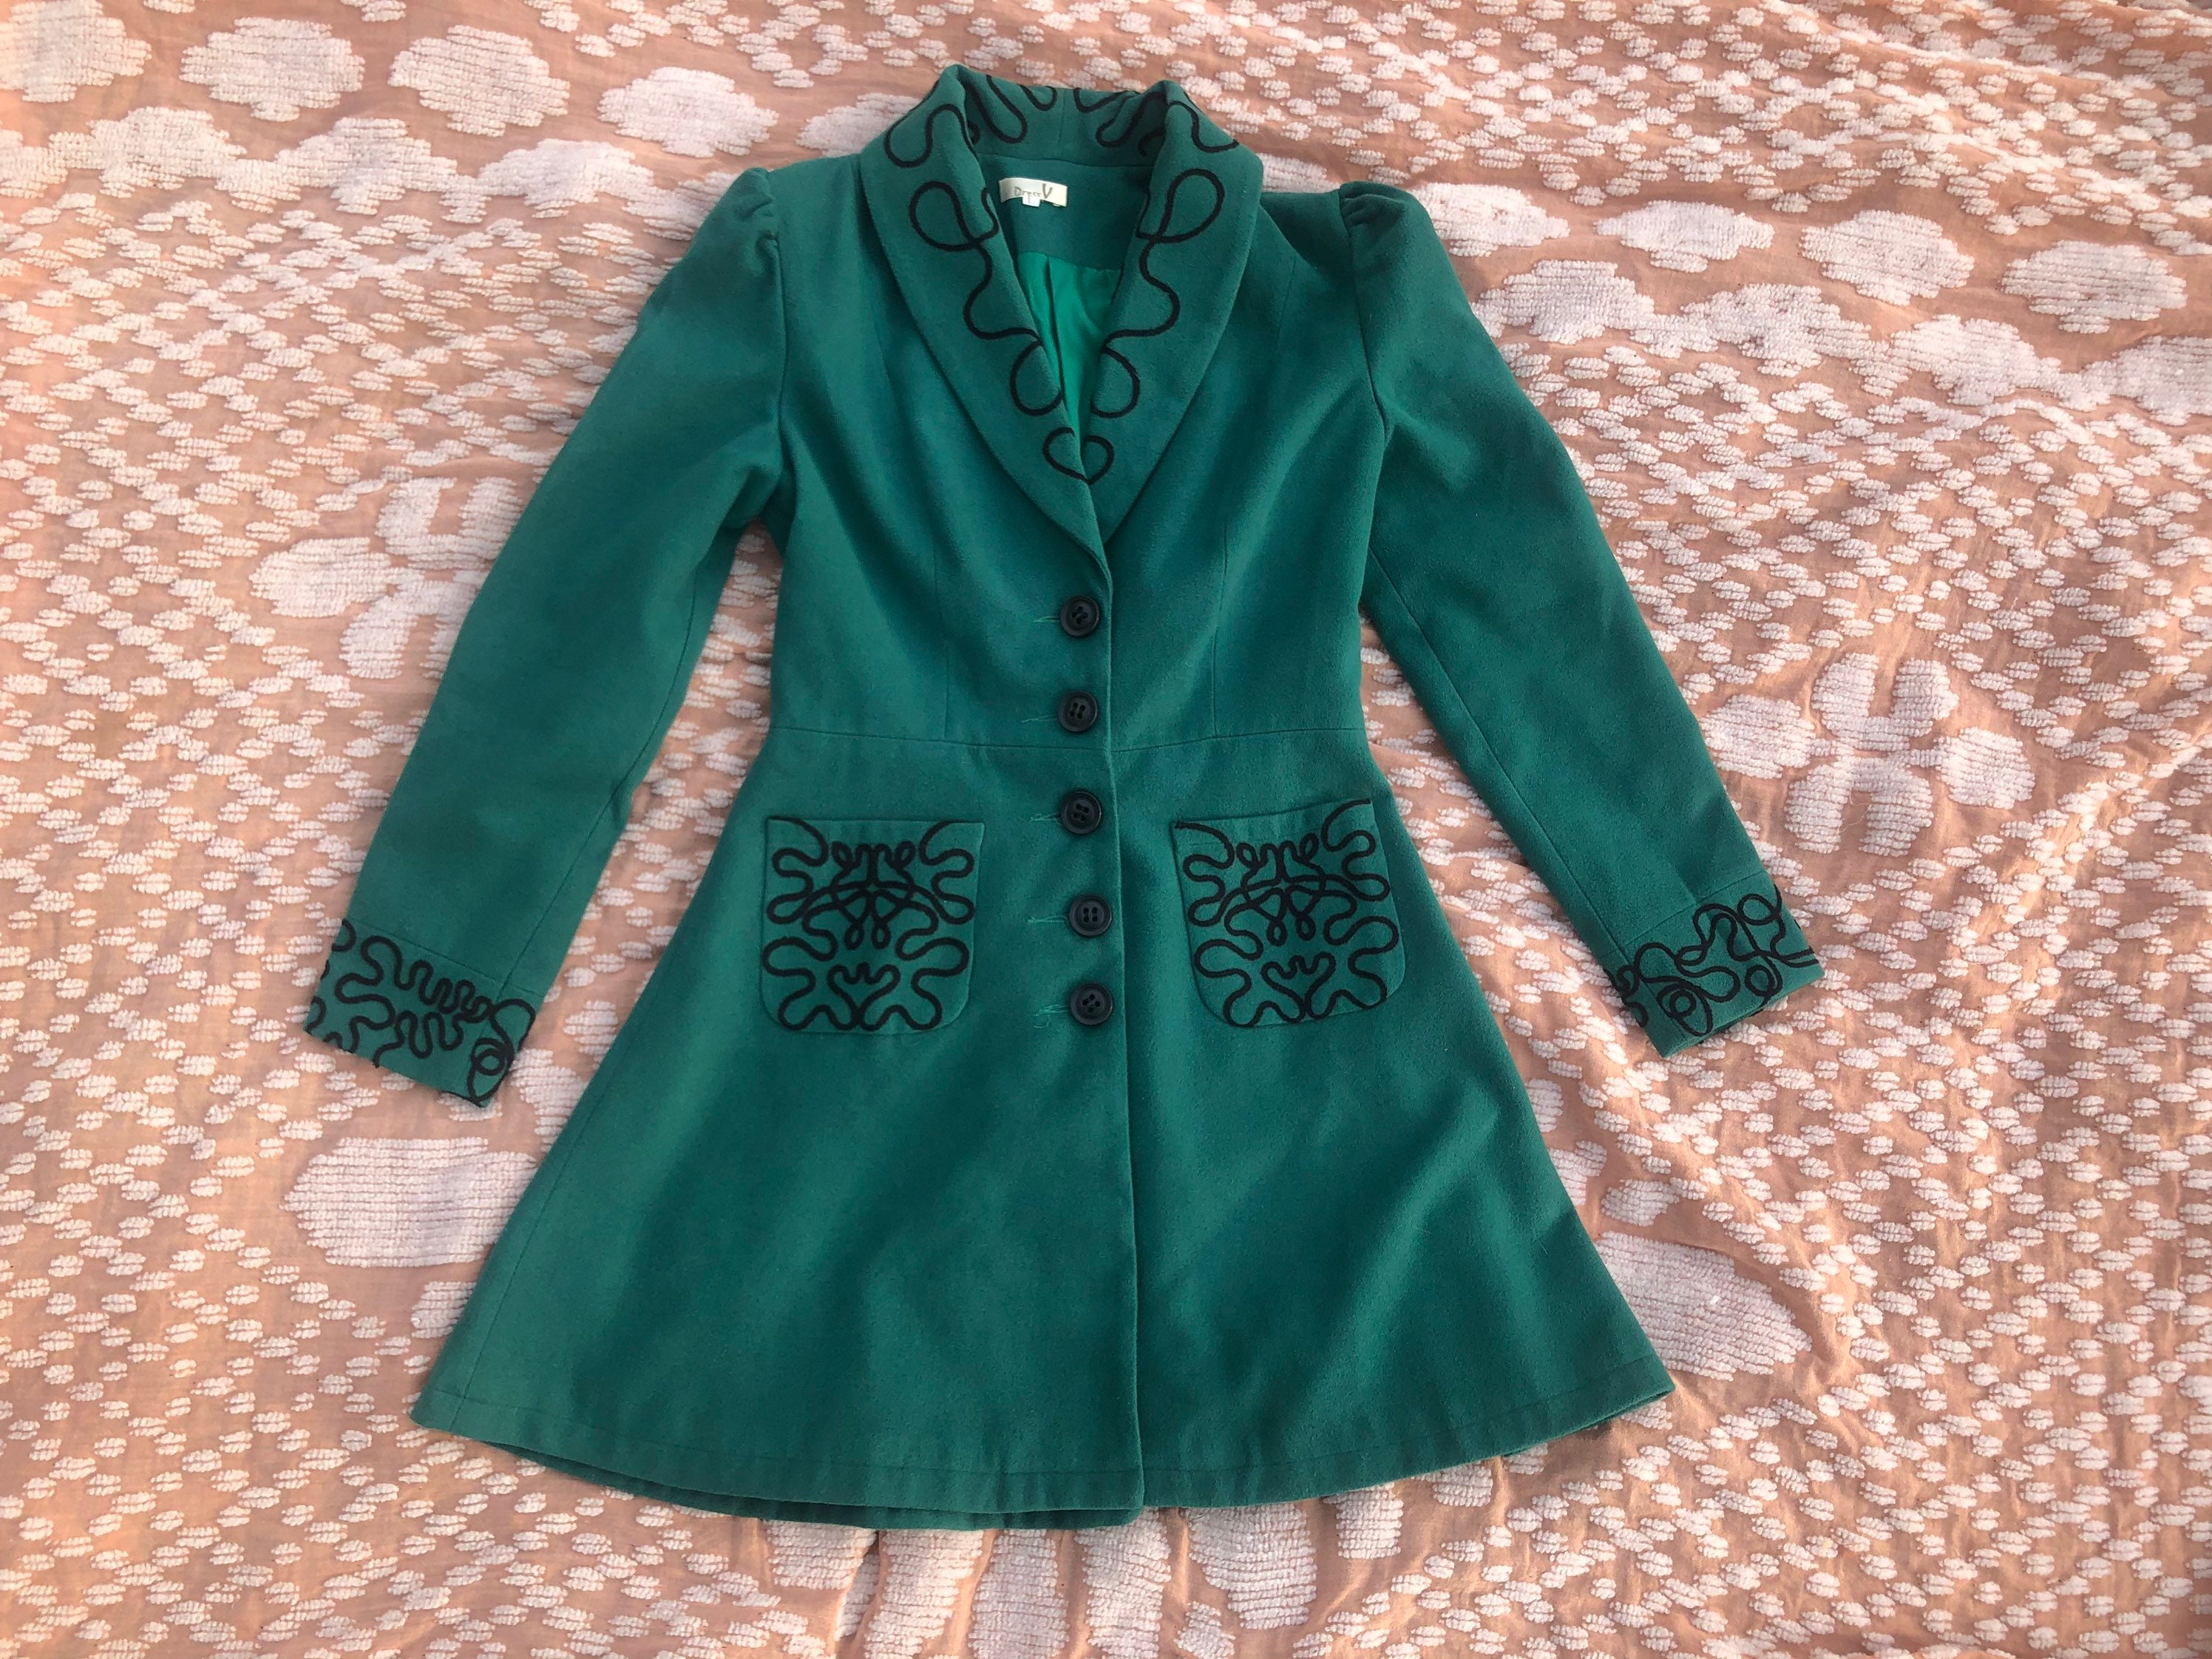 80s Dresses   Casual to Party Dresses 80S Emerald Green Peplum Jacket Puff Shoulders, Embroidered Felt Coat, Fitted Blazer Tailored Fit  Flare With Embroidery 1980S 90S 1990S $0.00 AT vintagedancer.com